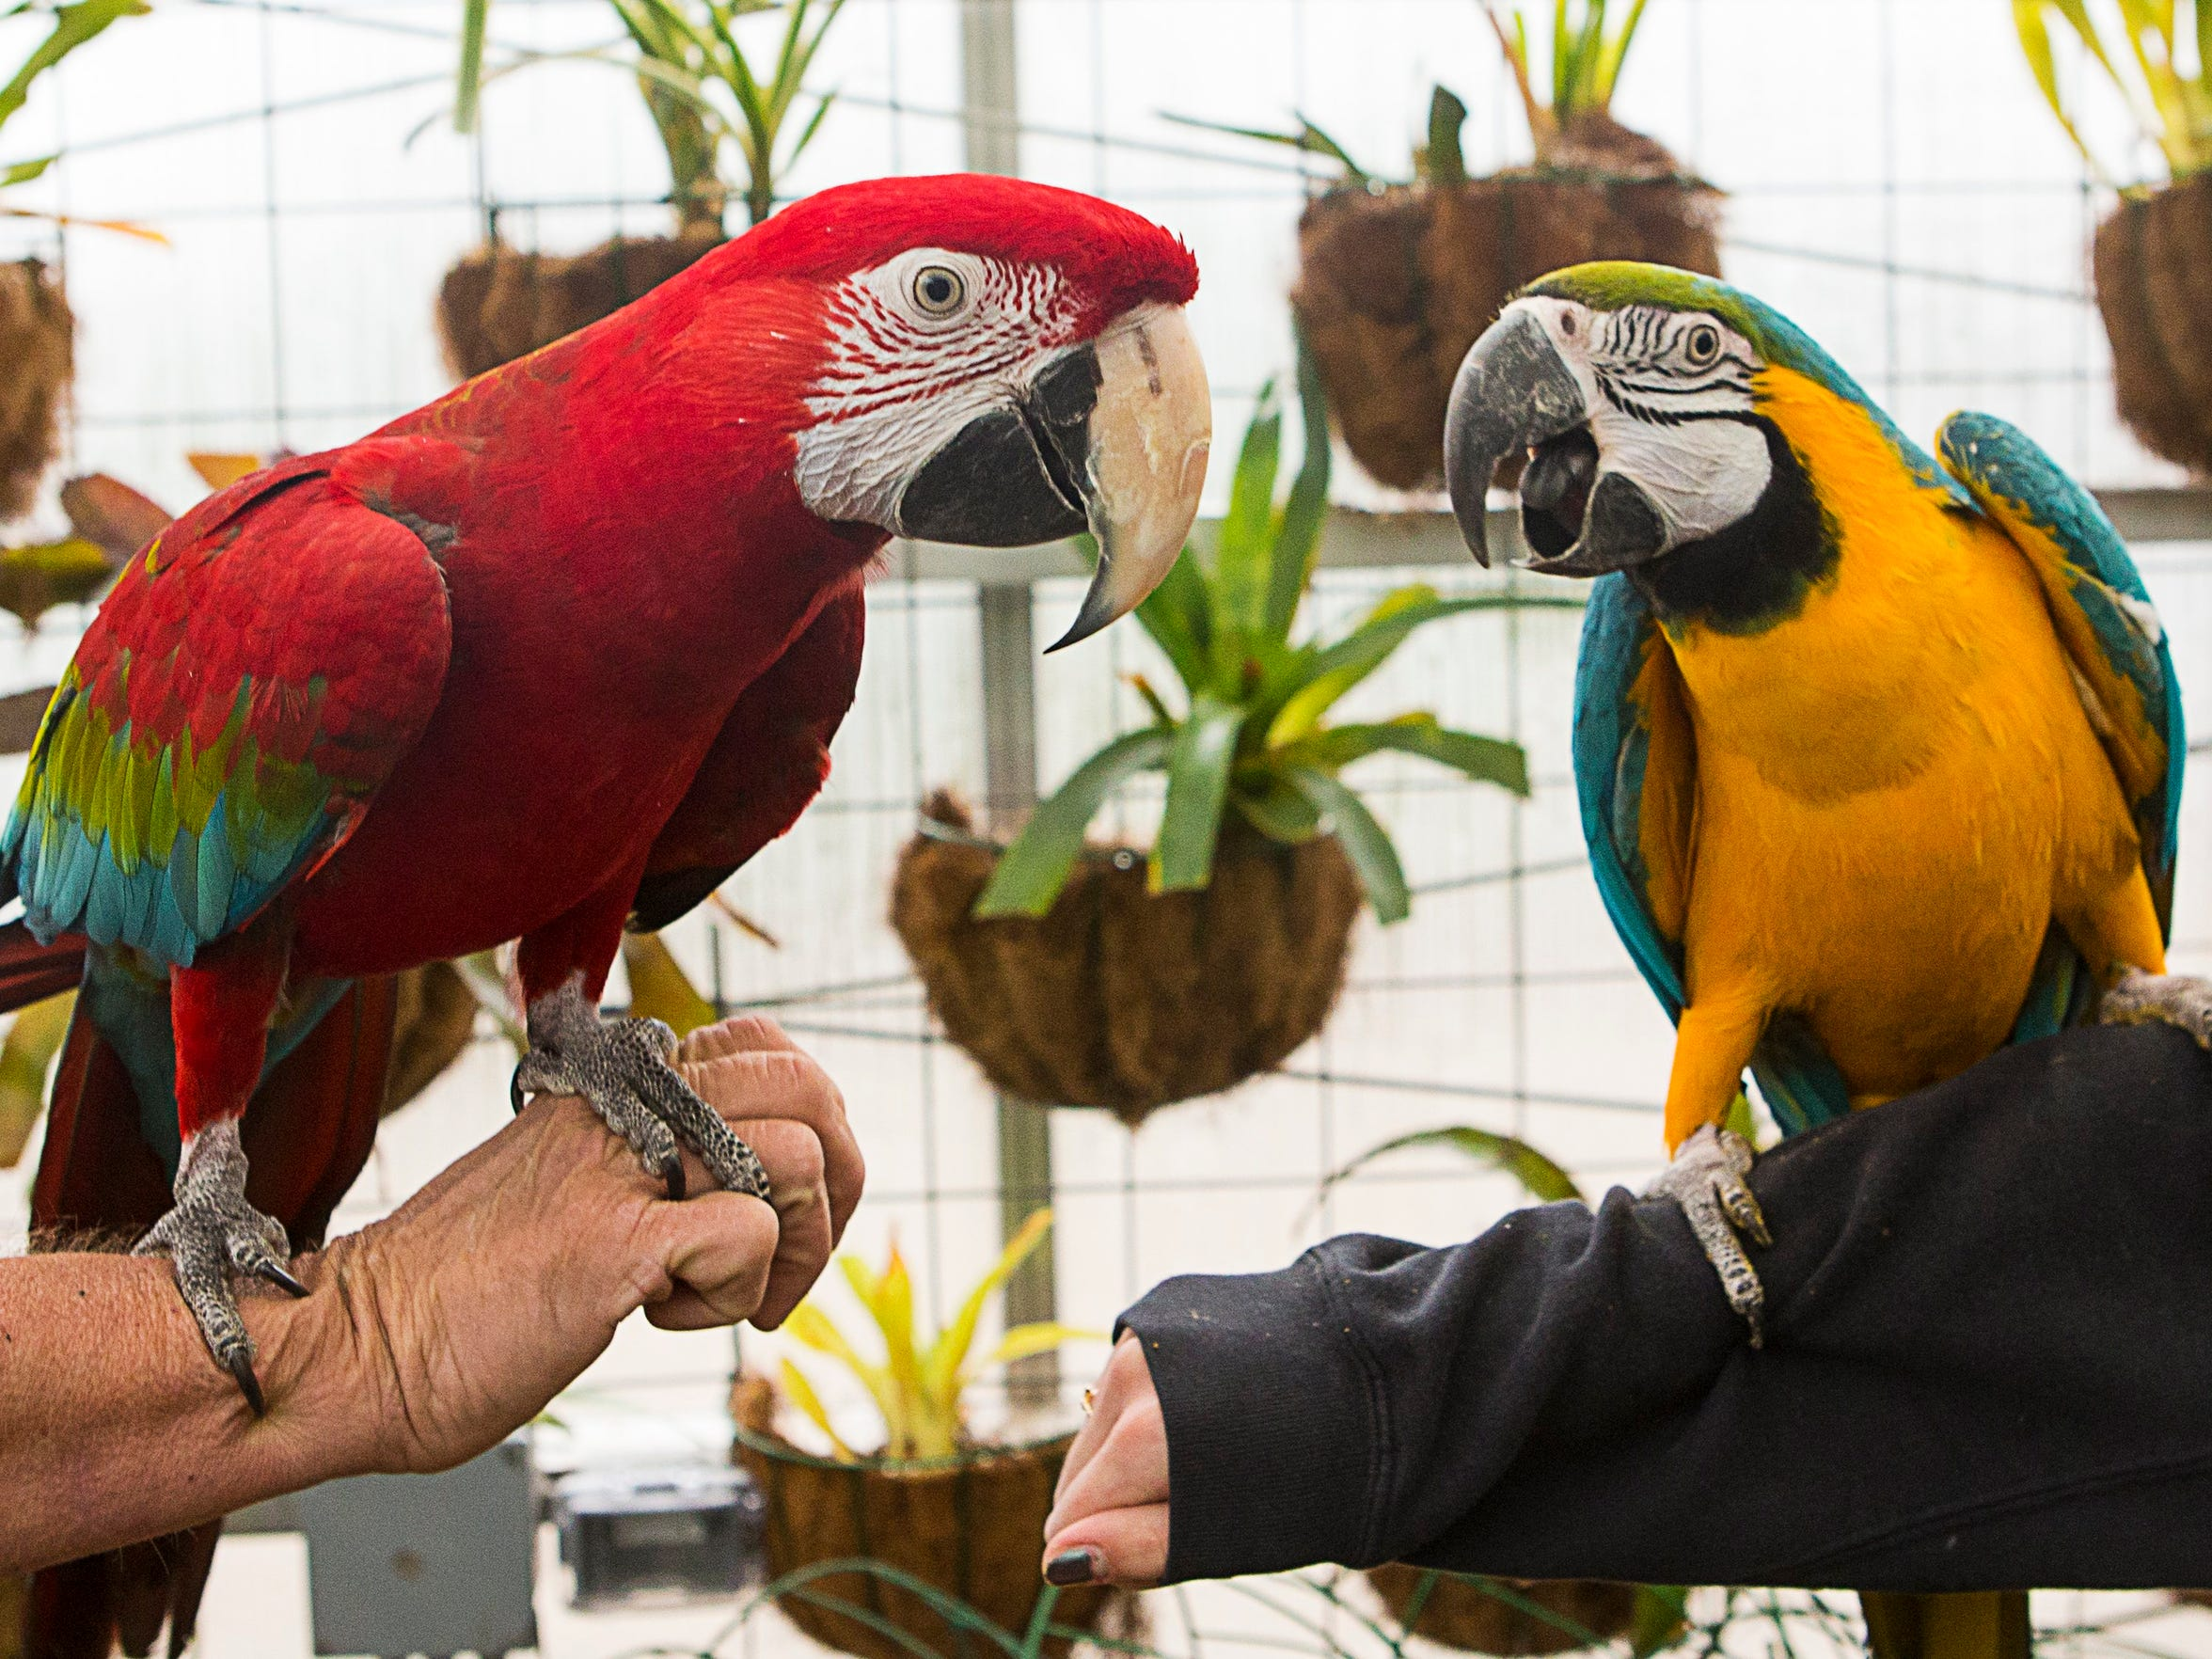 The South Texas Botanical Gardens & Nature Center features Parrot Talk at 1:30 p.m., Fridays, Saturdays and Sundays. Free with paid admission.